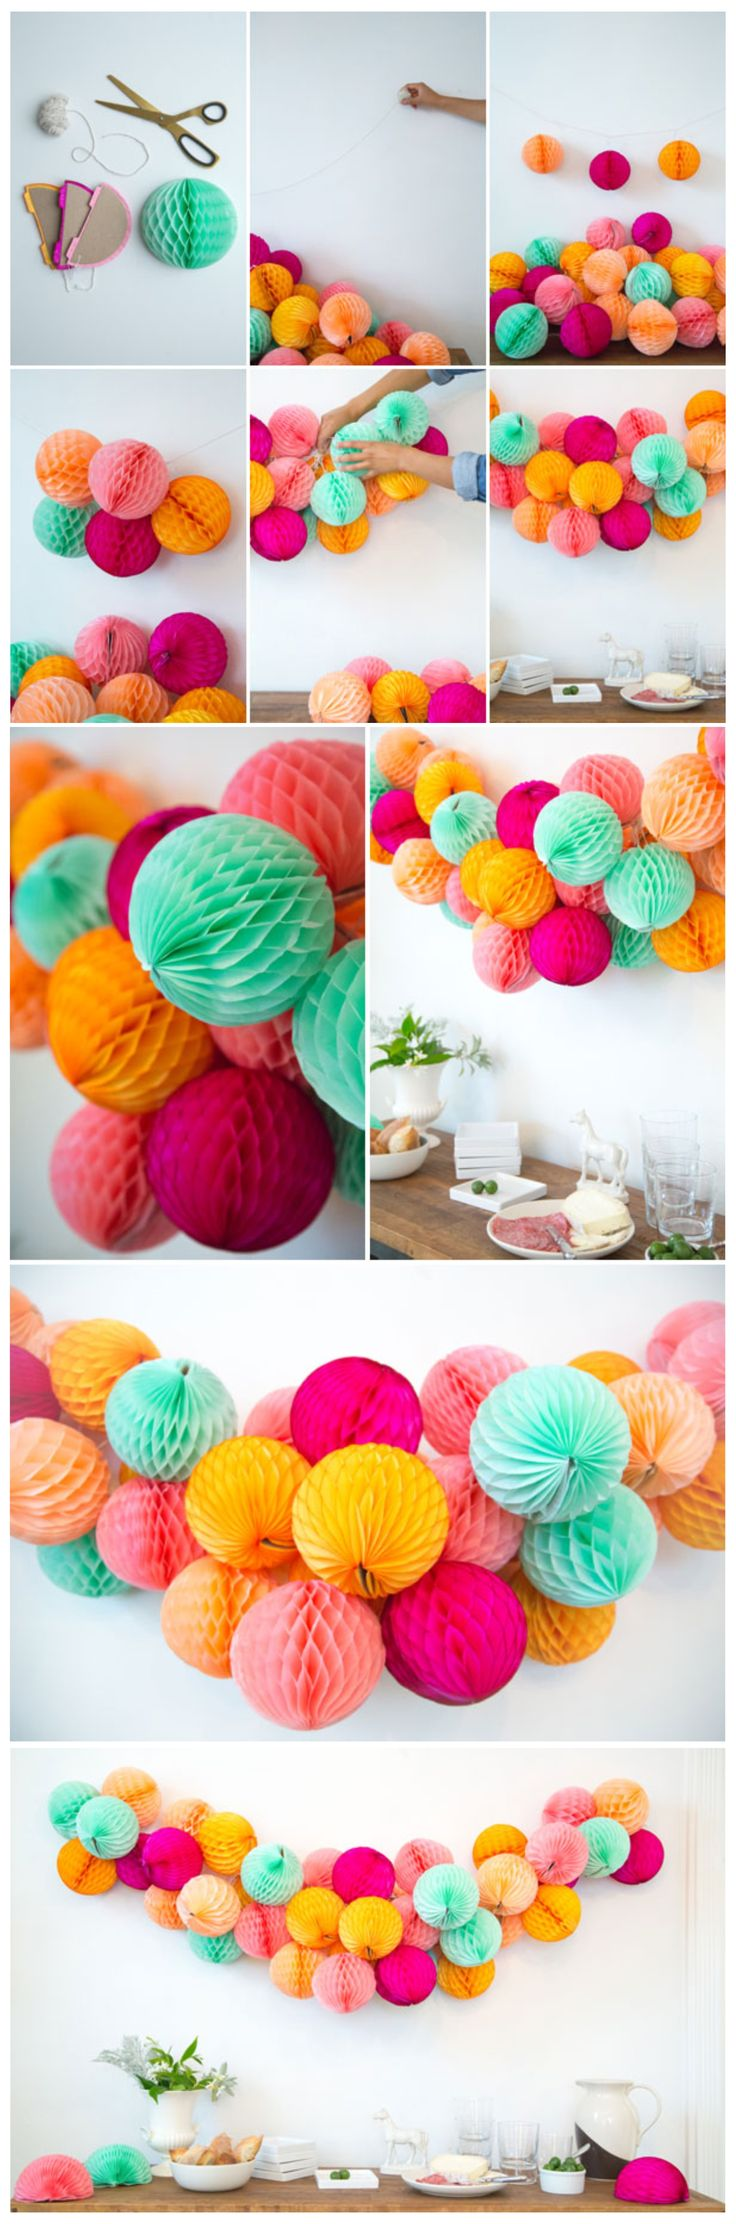 Easy fun-tastic party decor!